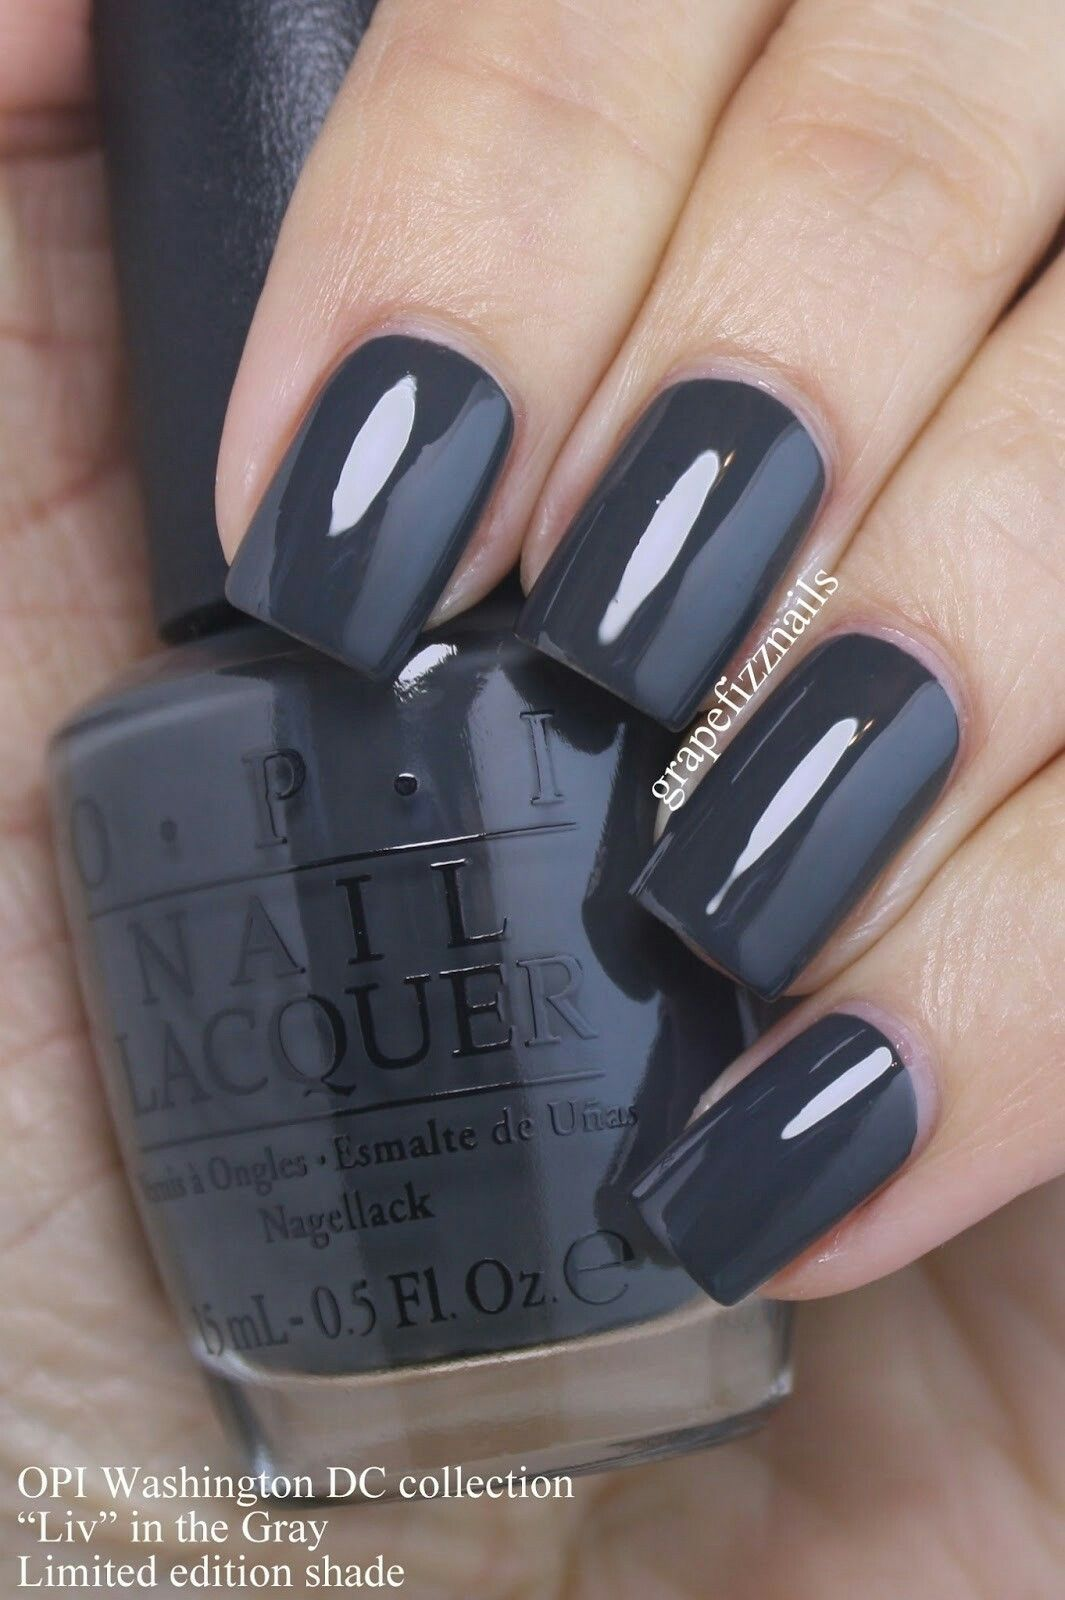 Fun Hobby Advice For Young And Old Alike | Amazing nails, Winter ...